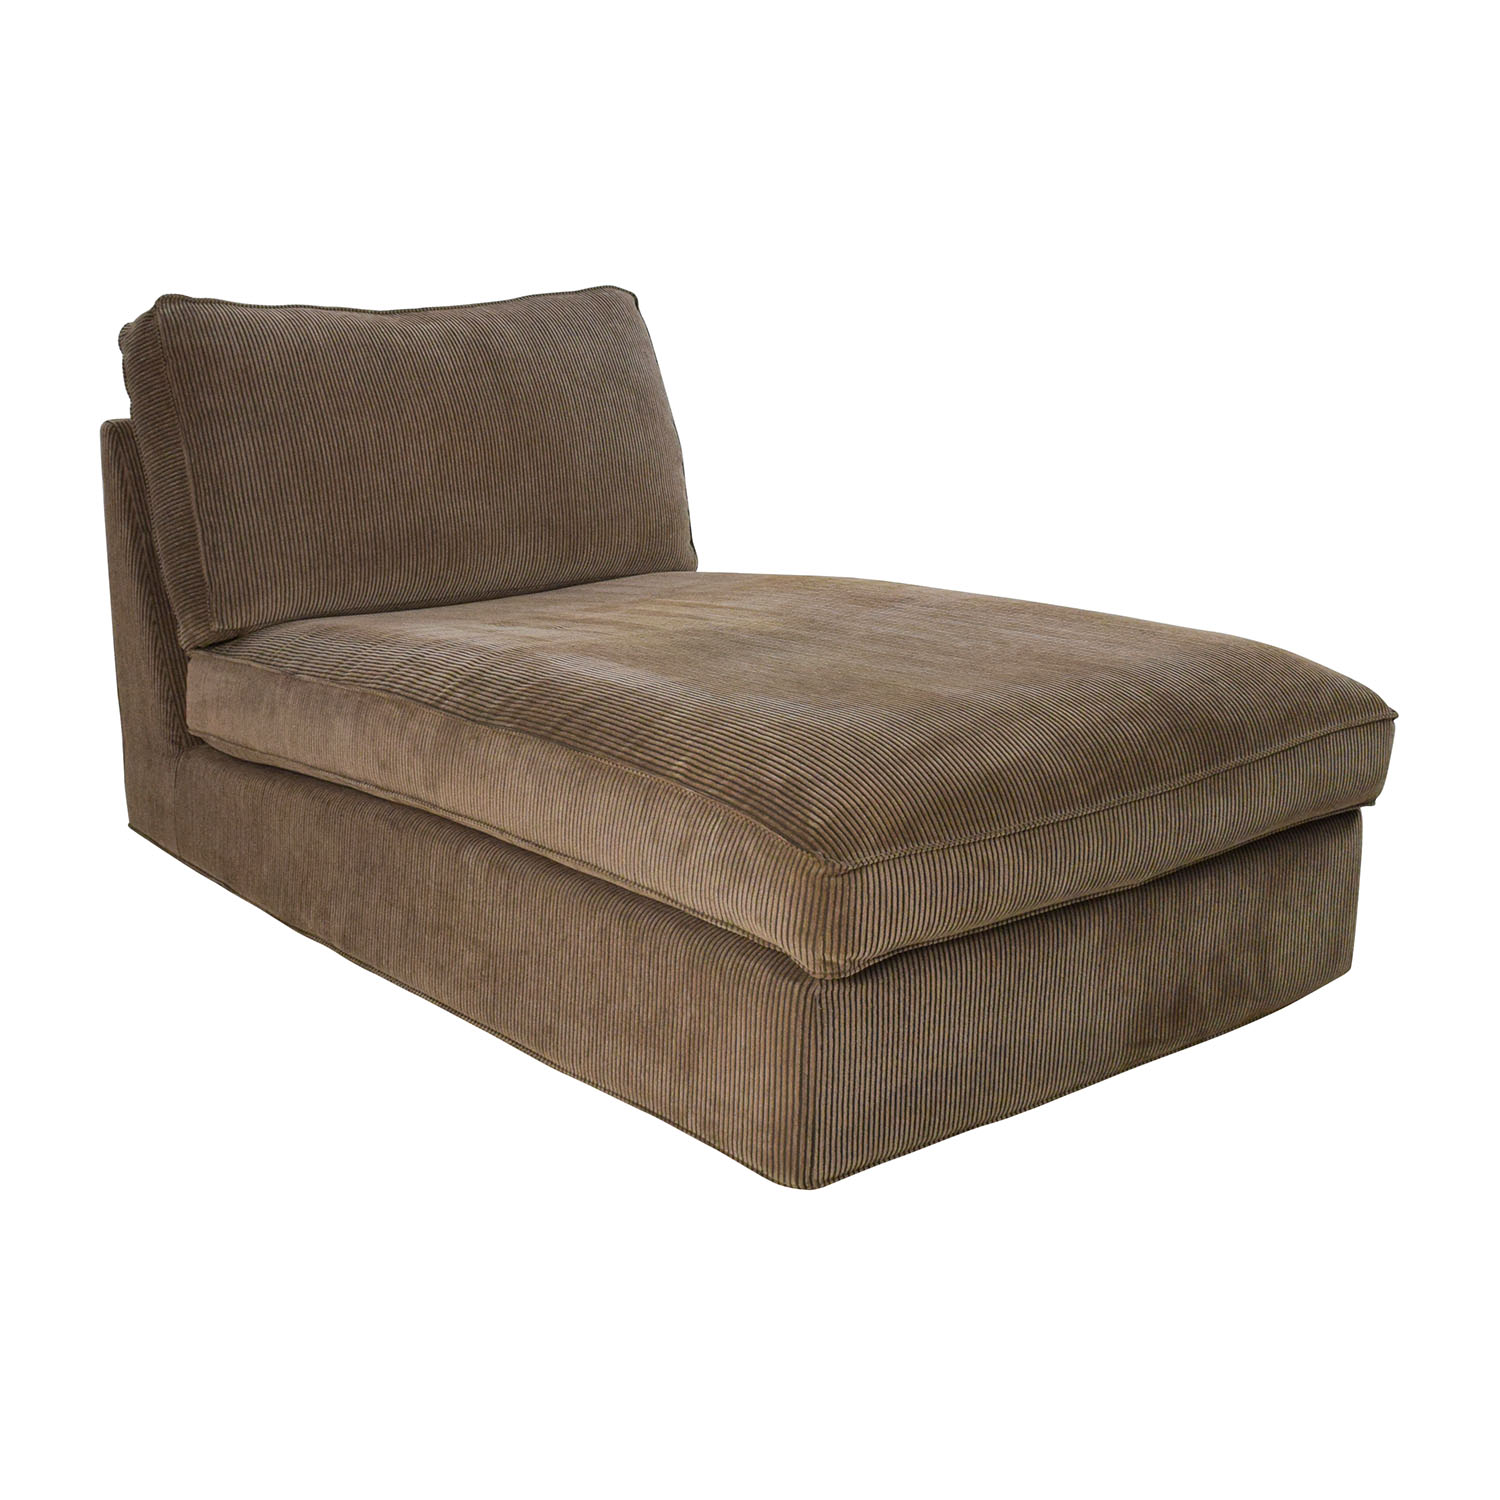 ... buy IKEA IKEA KIVIK Chaise Lounge online ...  sc 1 st  Furnishare : ikea chaise lounge - Sectionals, Sofas & Couches